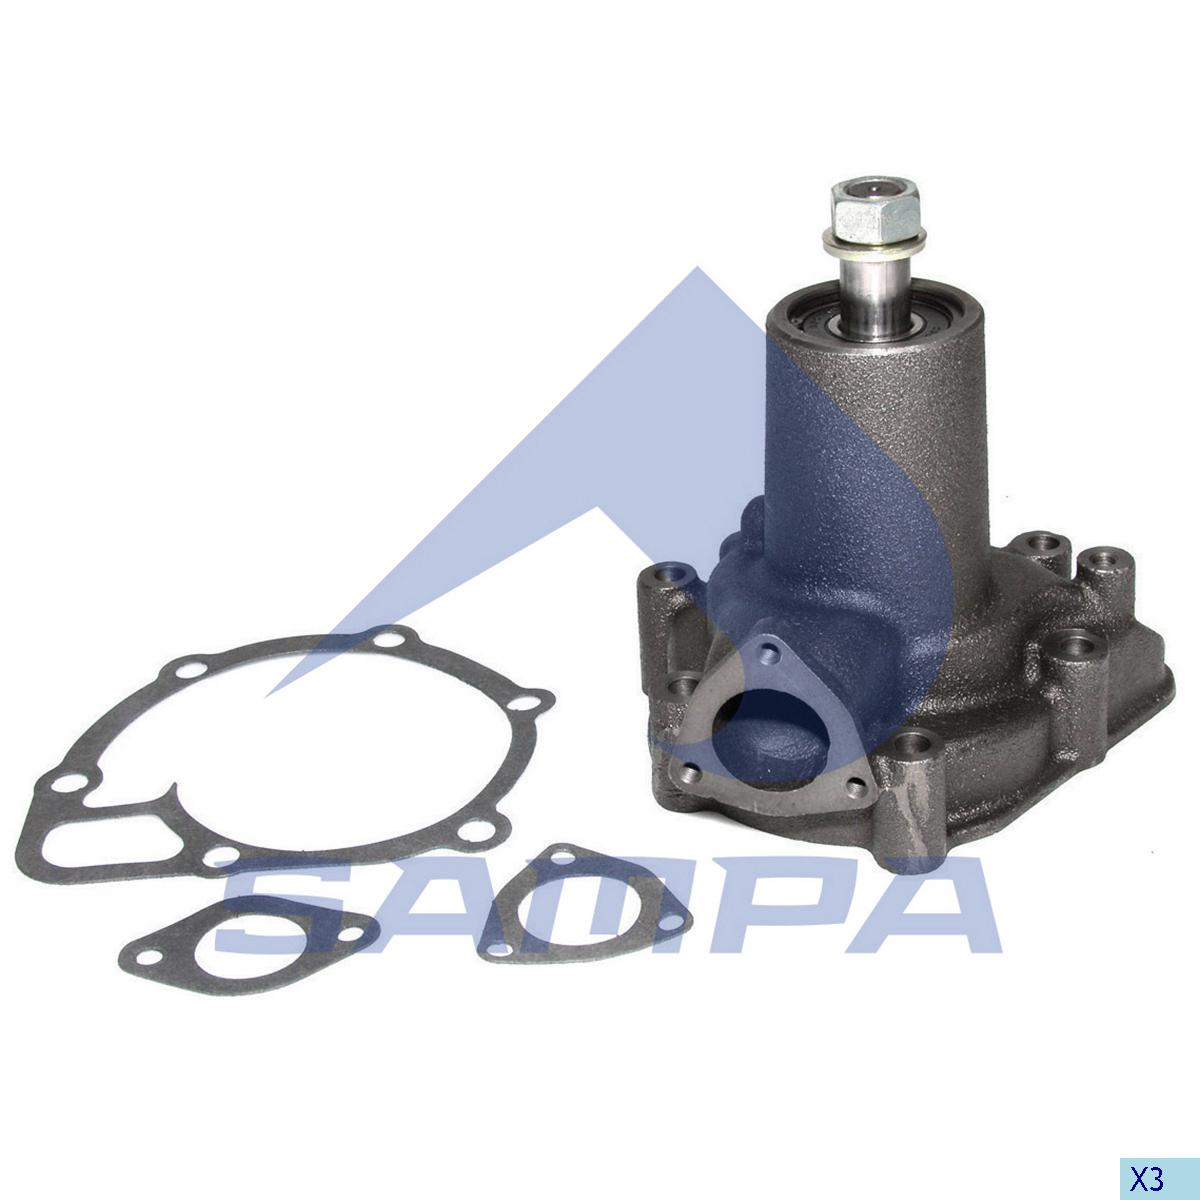 Water Pump, Scania, Engine